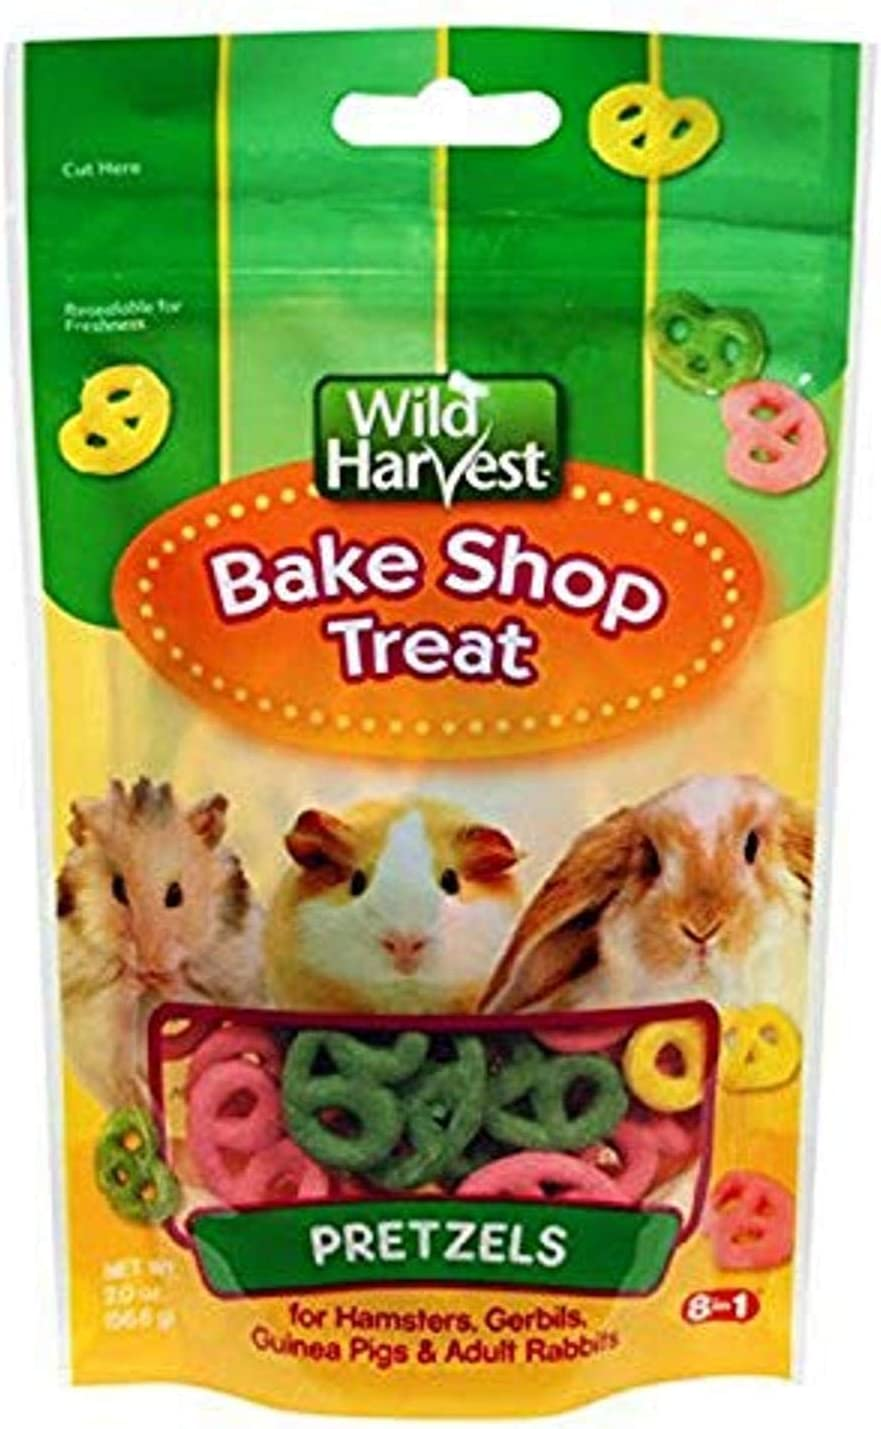 Wild Harvest Bake Shop Pretzel Treats For Small Animals, 2 Oz - P-84133